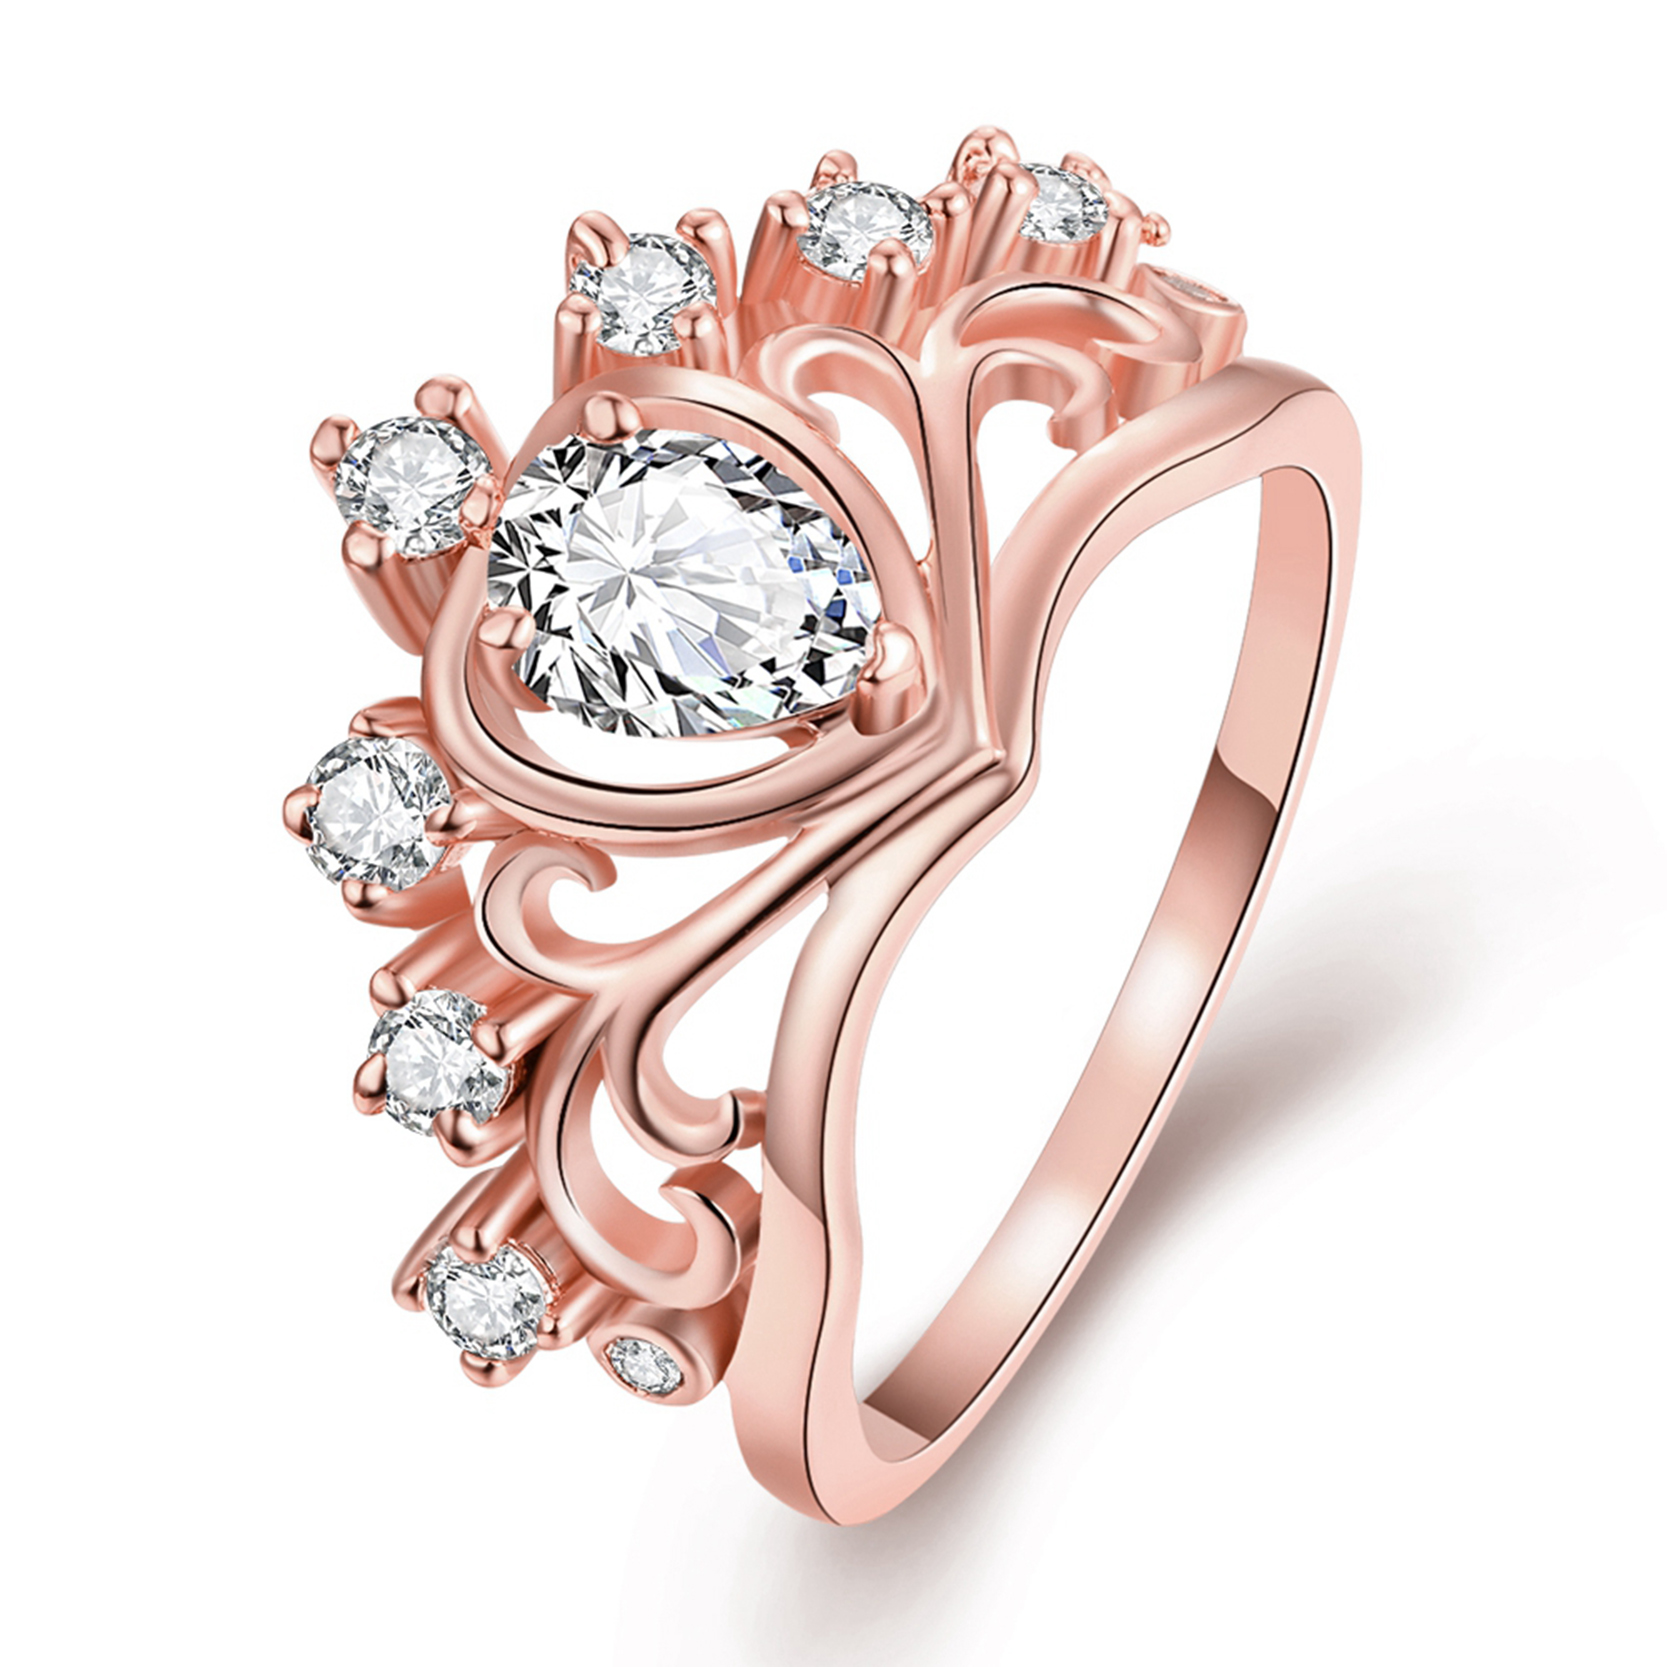 Compare Prices on Promise Rings Size 11- Online Shopping/Buy Low ...